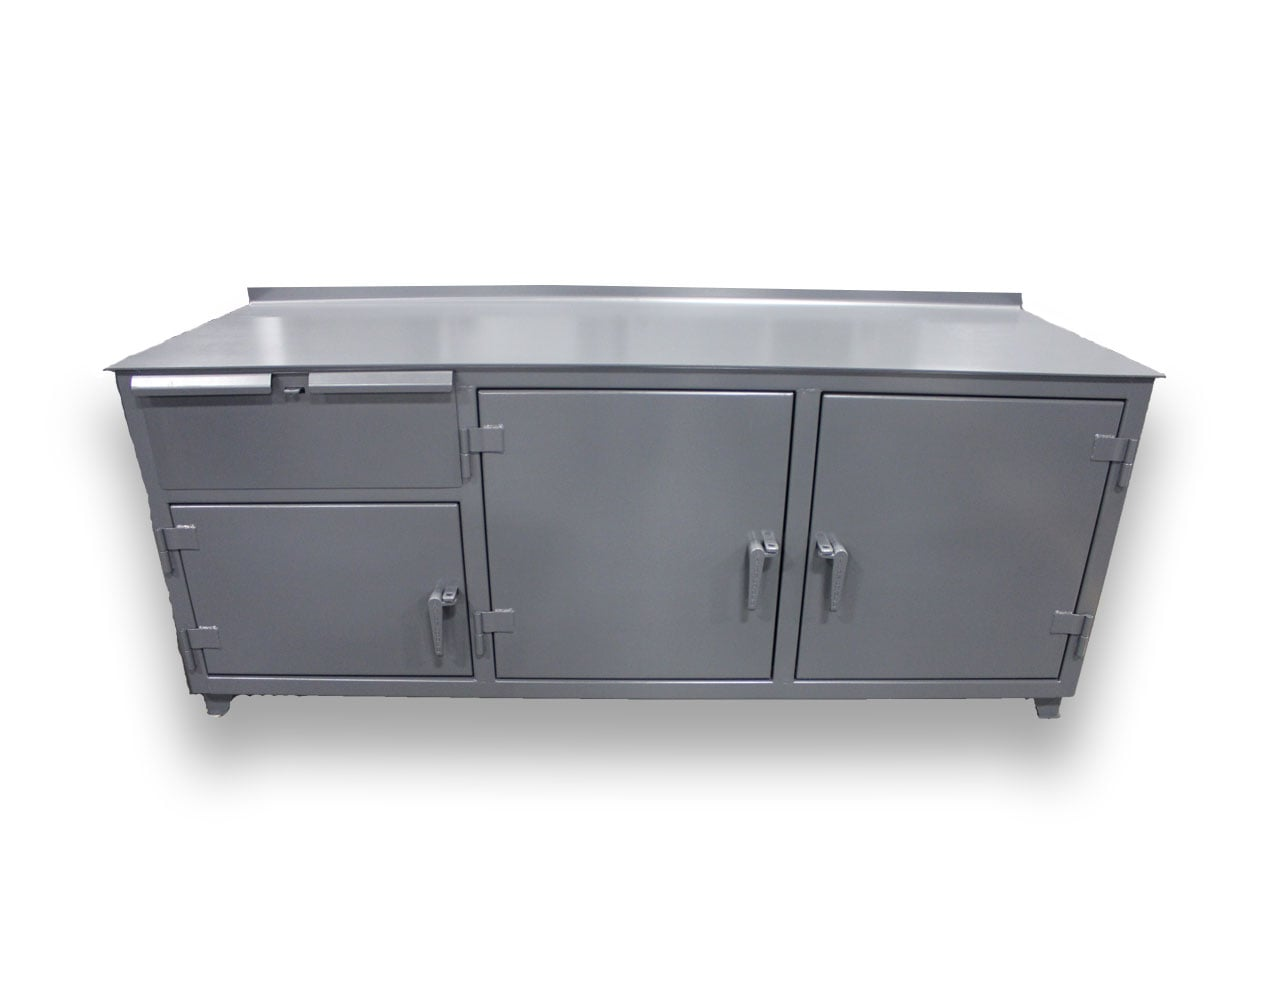 Extra Heavy Duty 12 GA Workbench with 1 Drawer, 3 Shelves – 96 In. W x 30 In. D x 34 In. H